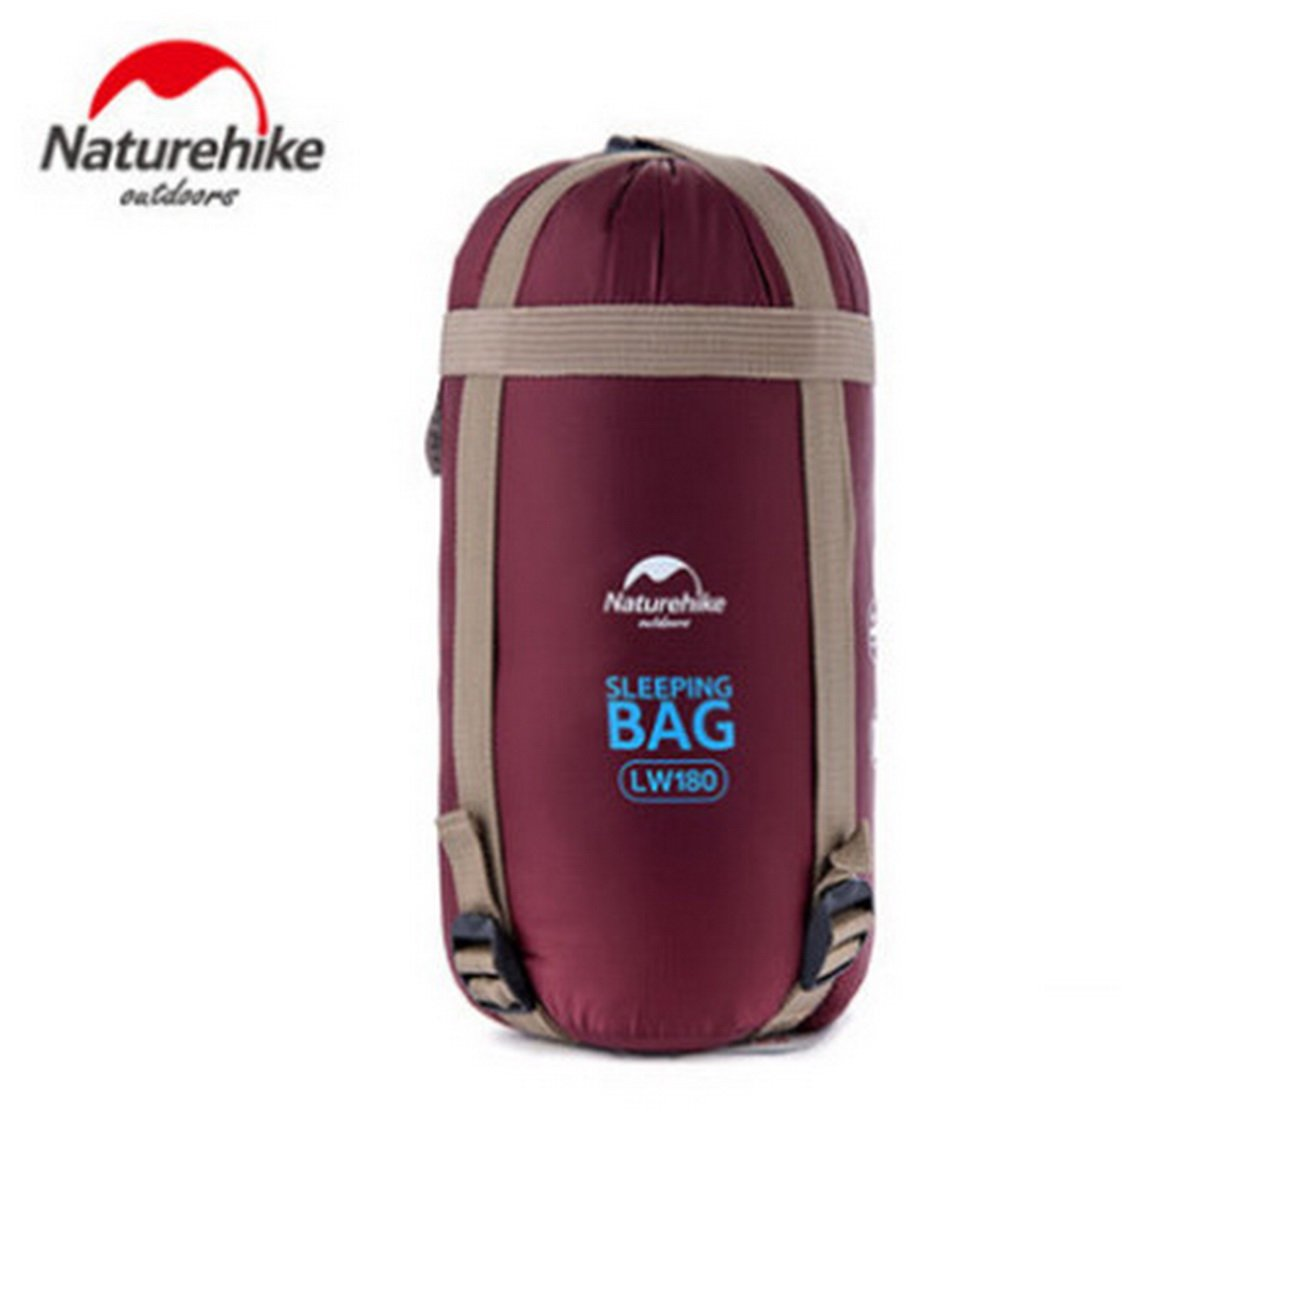 NatureHike 75 x 29.5 Mini Outdoor Ultralight Envelope Sleeping Bag Ultra-small Size For Camping Hiking Climbing NH15S003-D